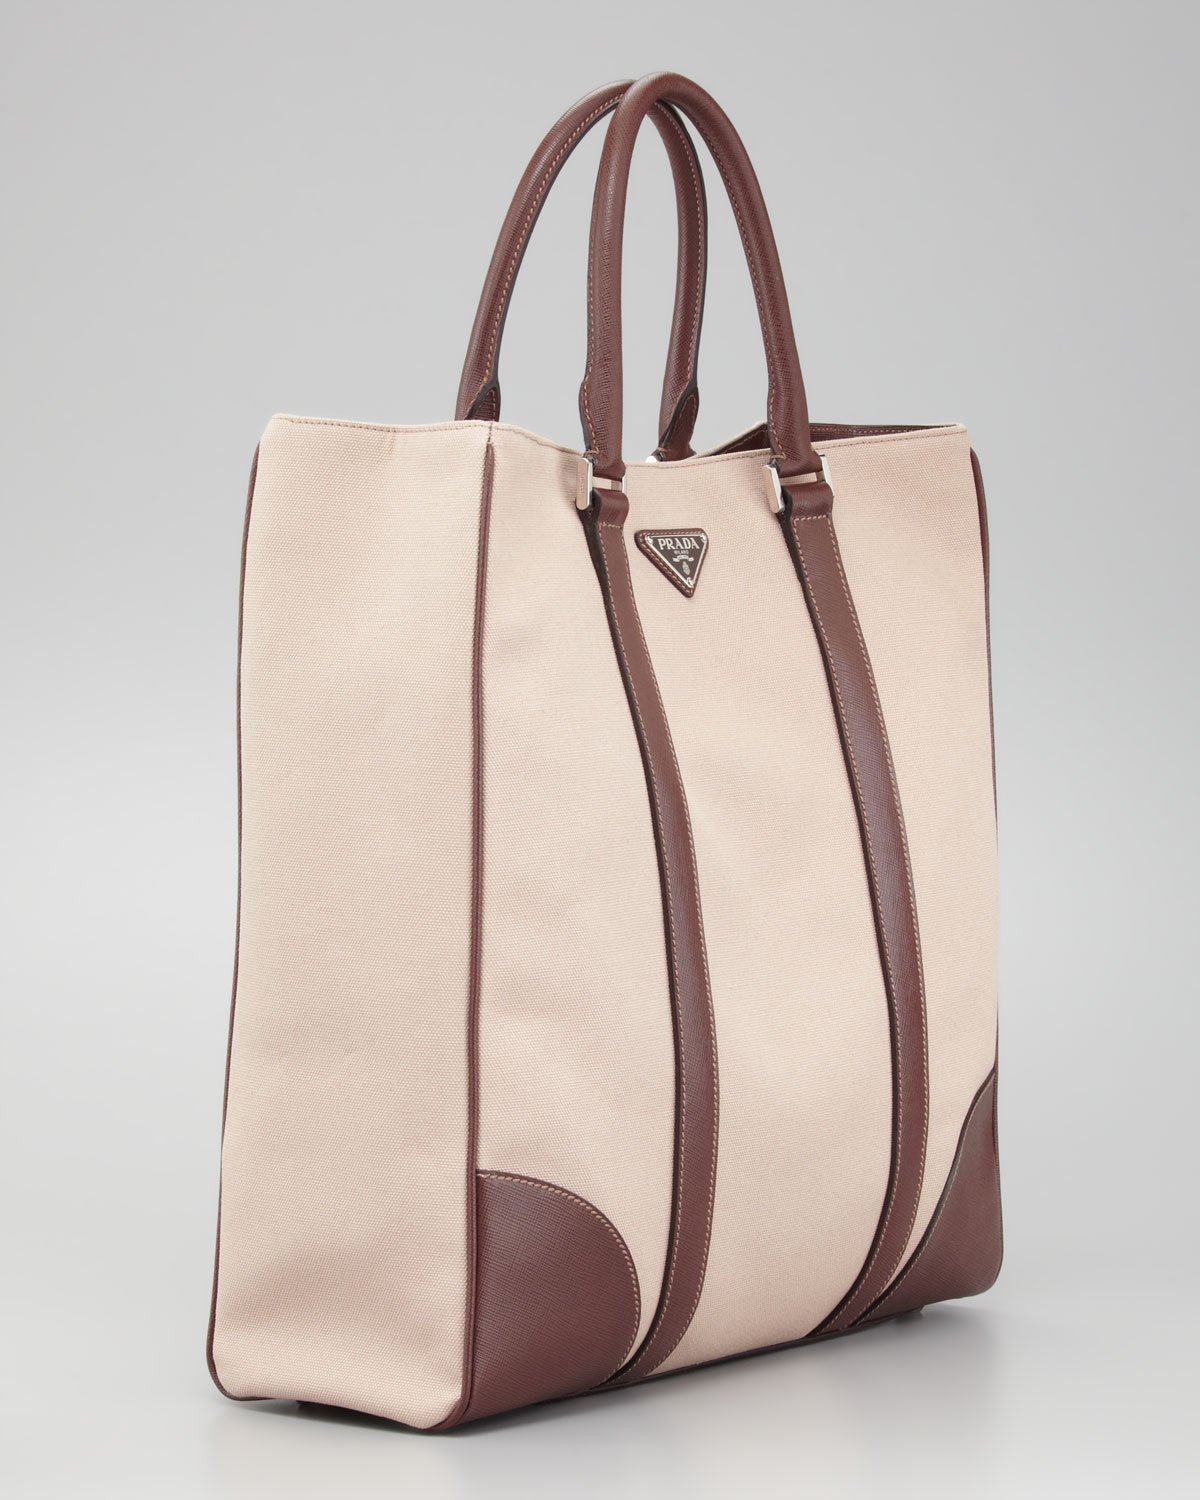 Prada Canvas Leather Tote Bag in Natural for Men | Lyst